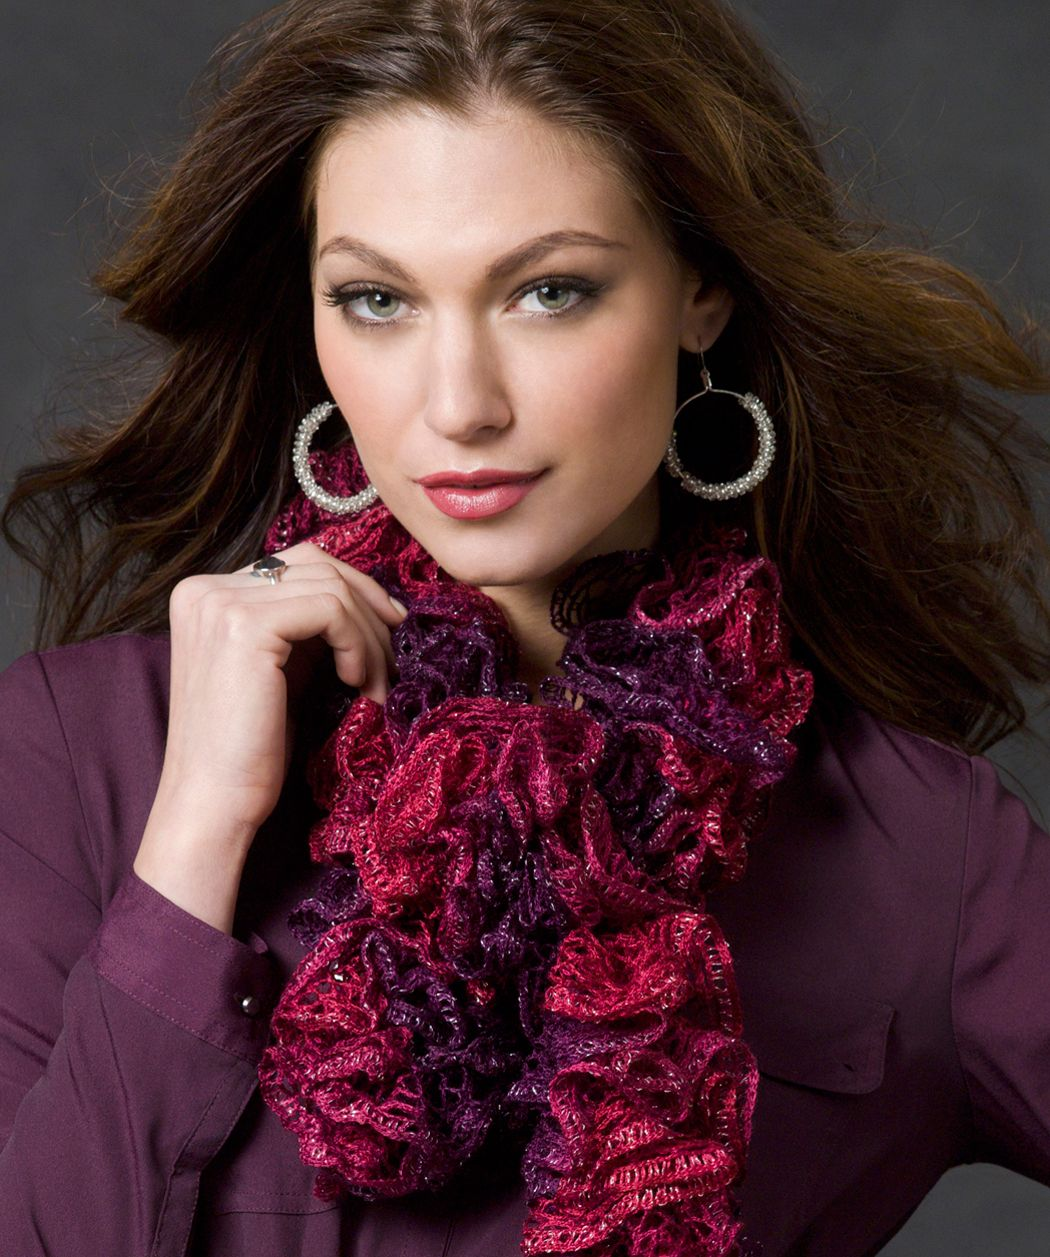 Saucy swirls scarf arts and crafts pinterest scarves scarf red heart free patterns bankloansurffo Images